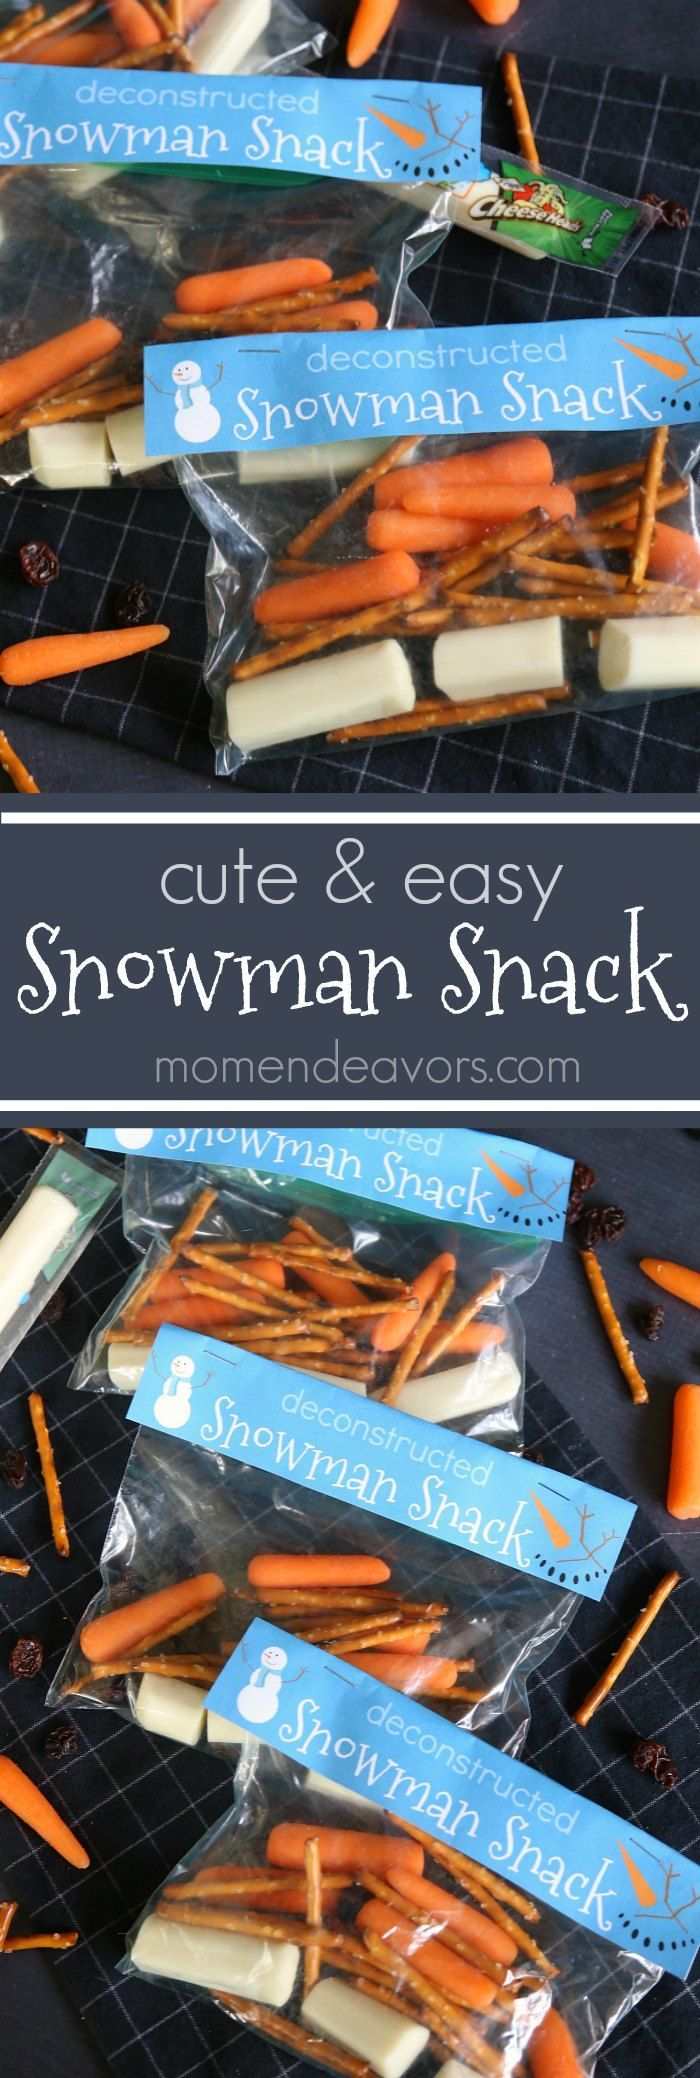 Cute Easy Snowman Snack Idea With Free Printable Available